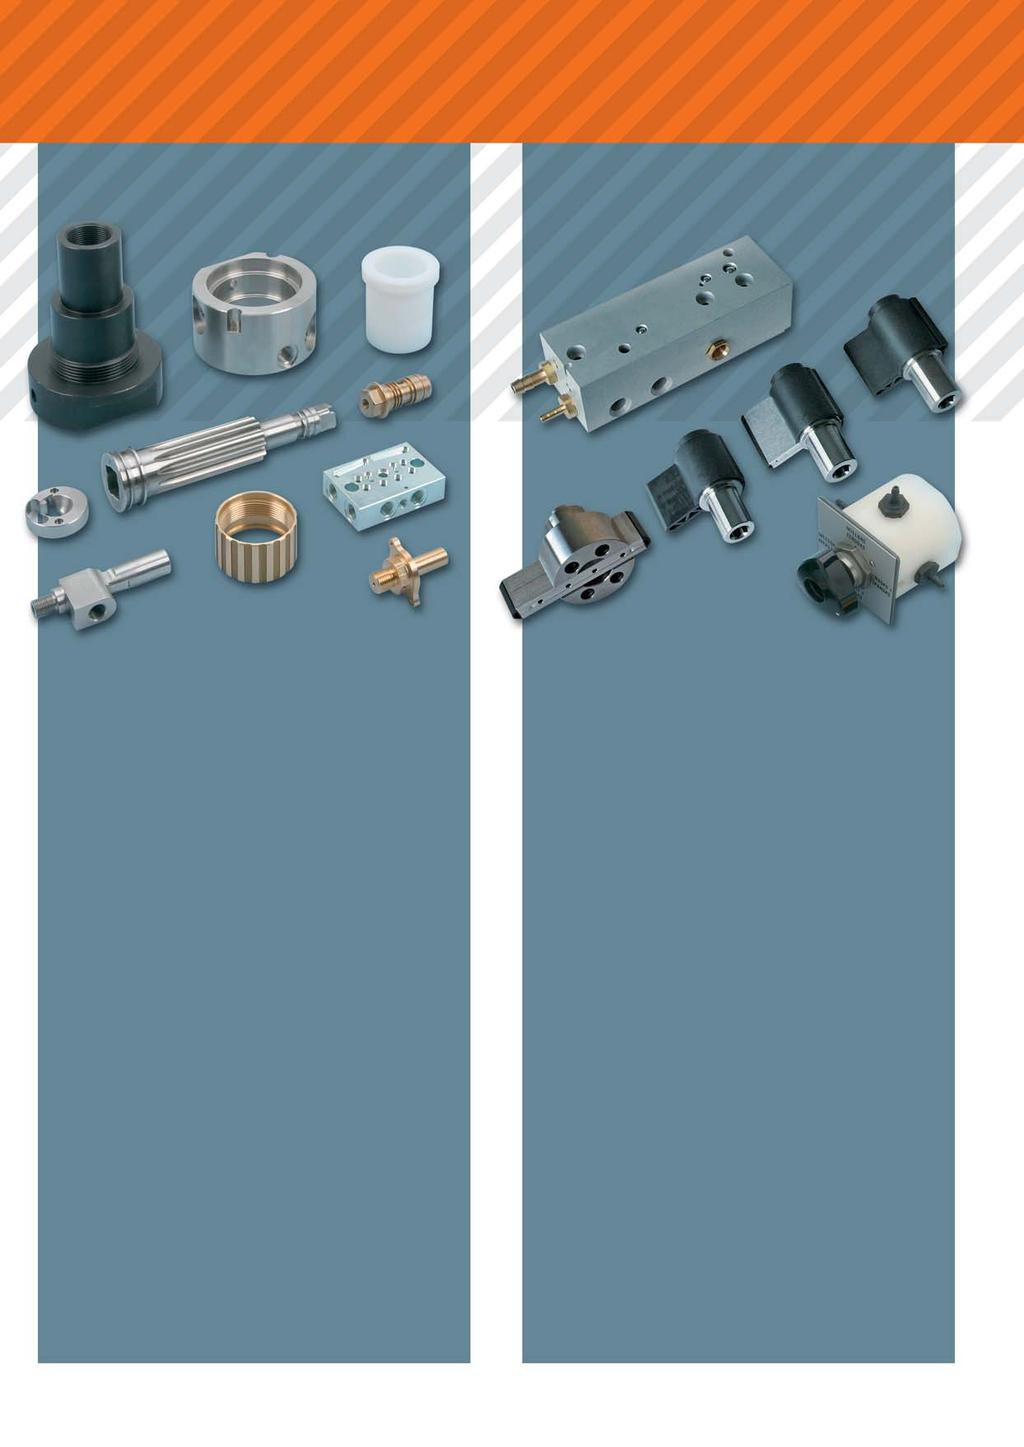 ur professional competence Turned and milled parts Component assemblies We turn everything for you Our production range includes the production of simple turned and milled parts as well as complex